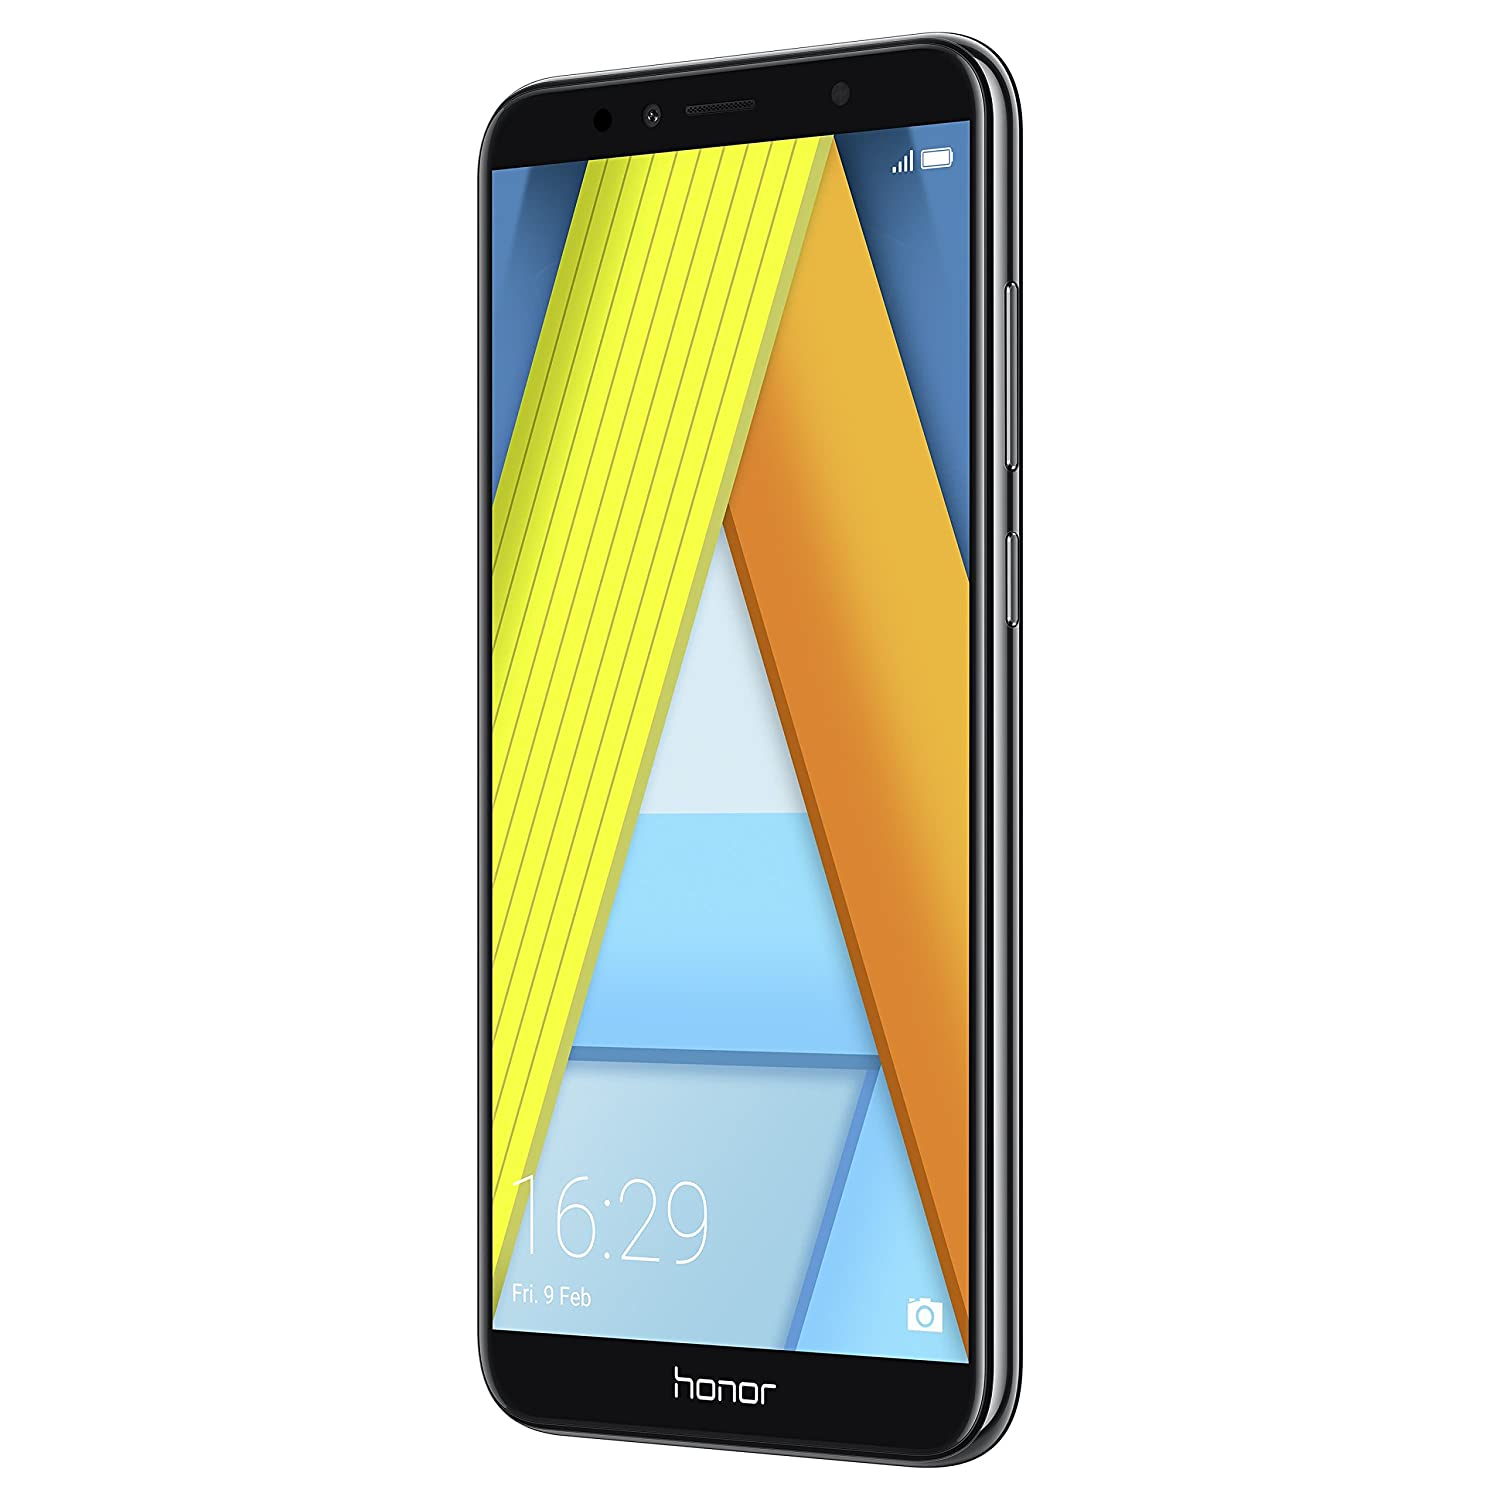 Honor 7A Dual SIM, 16 GB storage, 13 MP Camera and 5 70 Inch Full View  Display, UK Official Device - Black